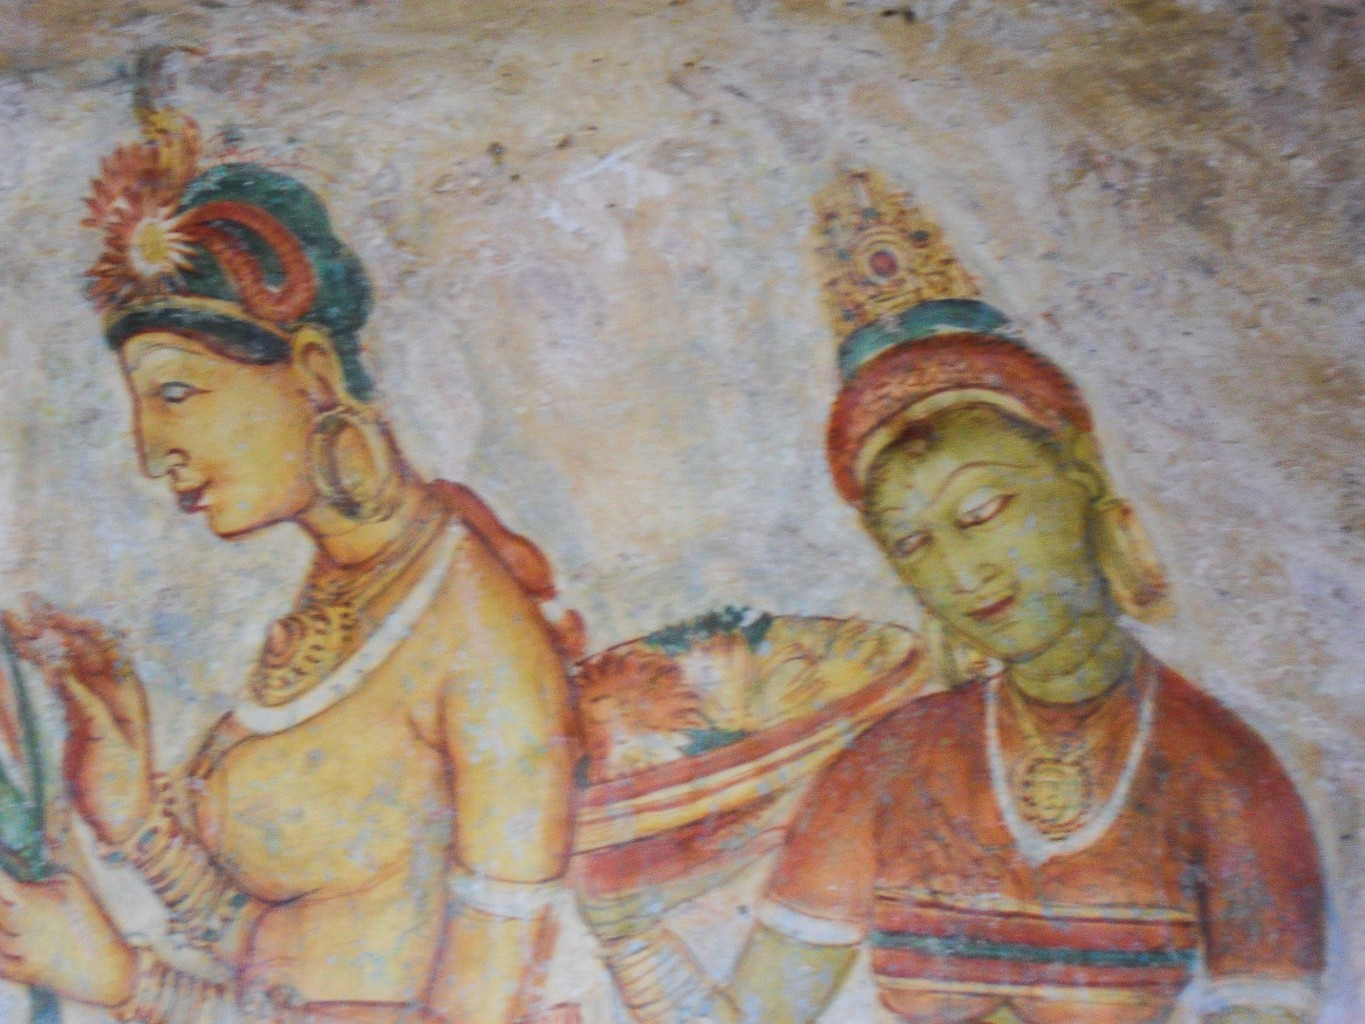 Sigiriya-Wall-Paintings-6